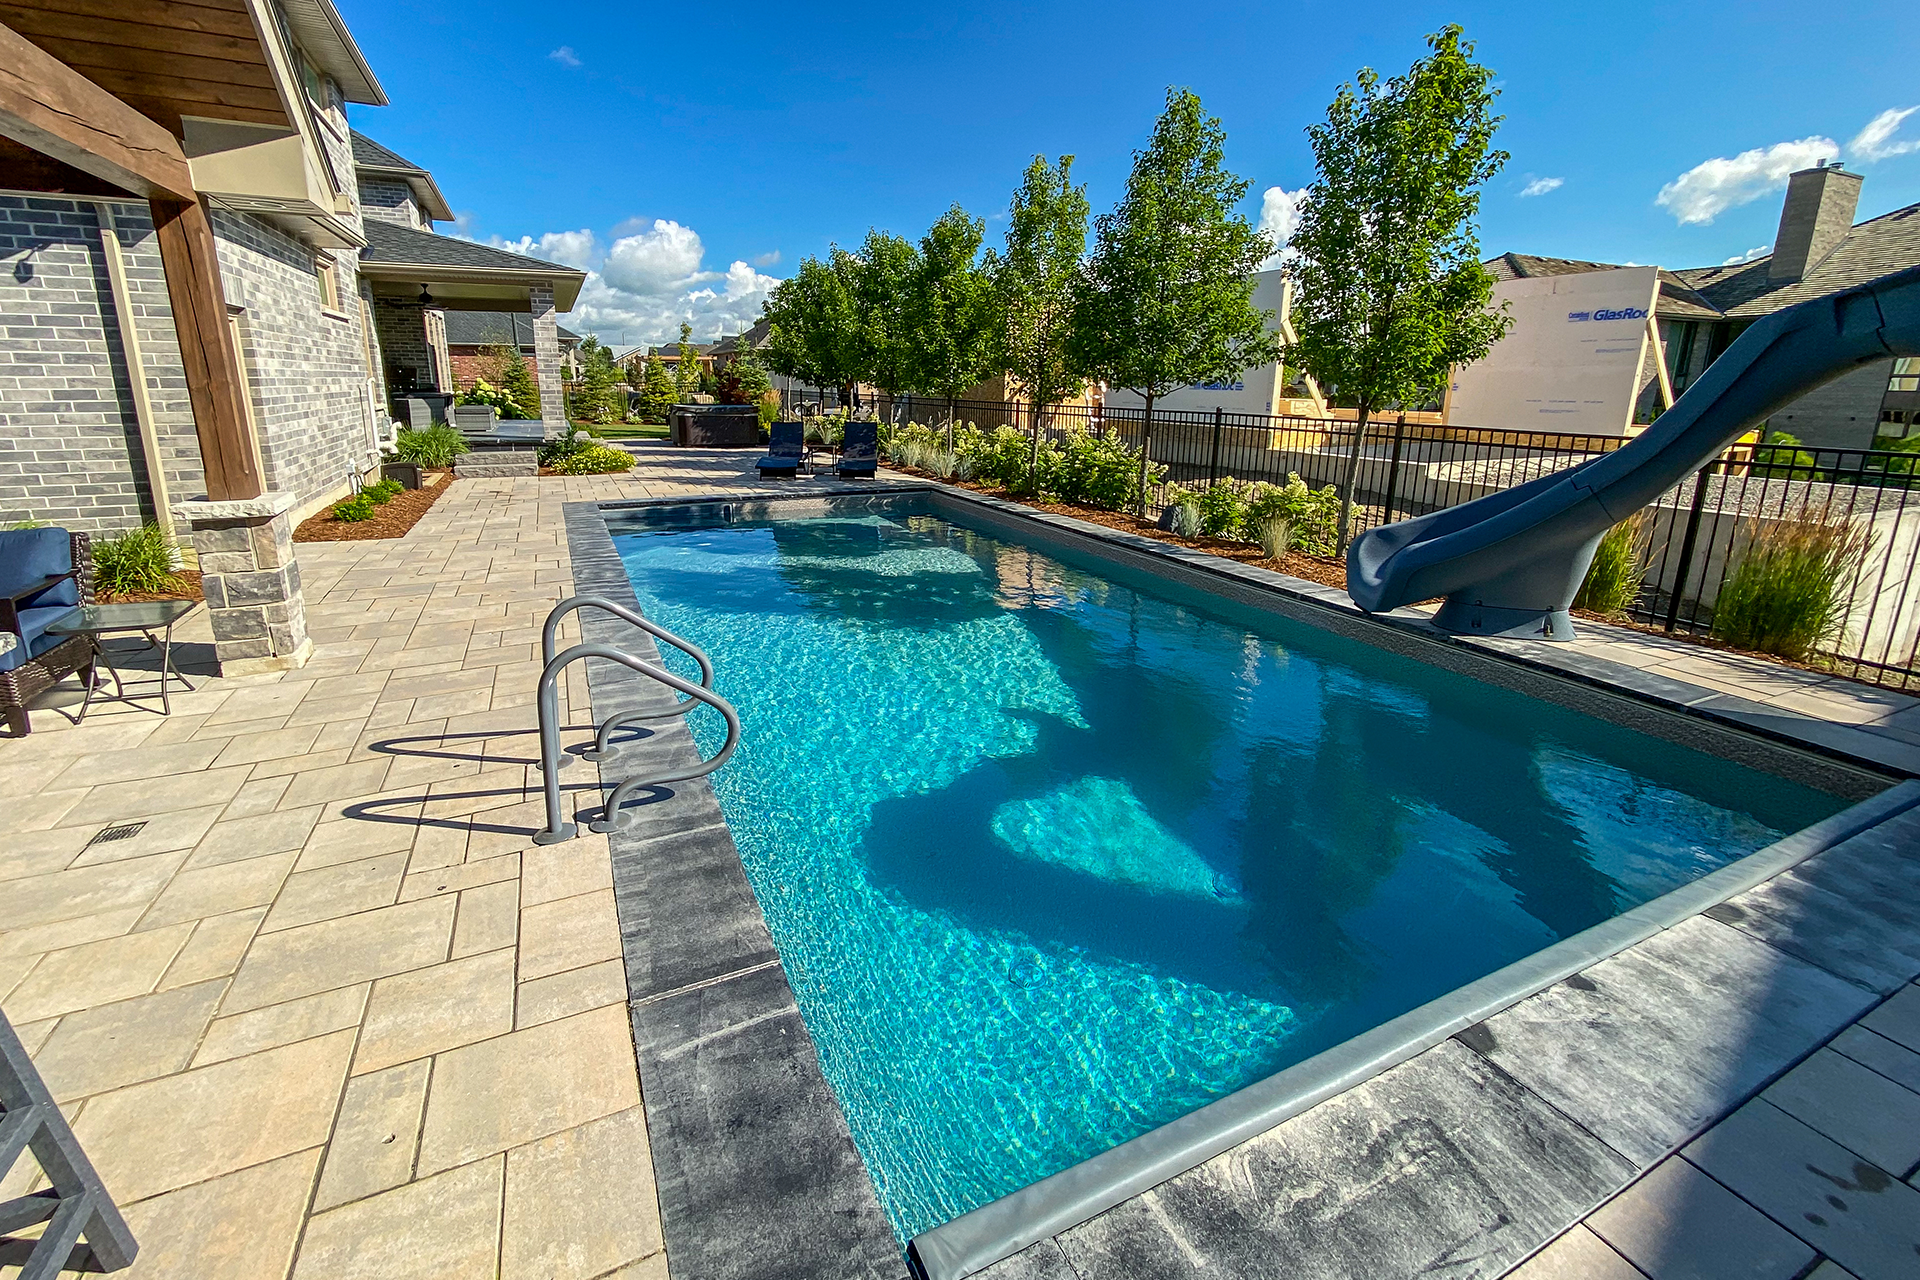 Backyard outdoor living space with a pool, roofed bar and pool slide by TLC Landscaping